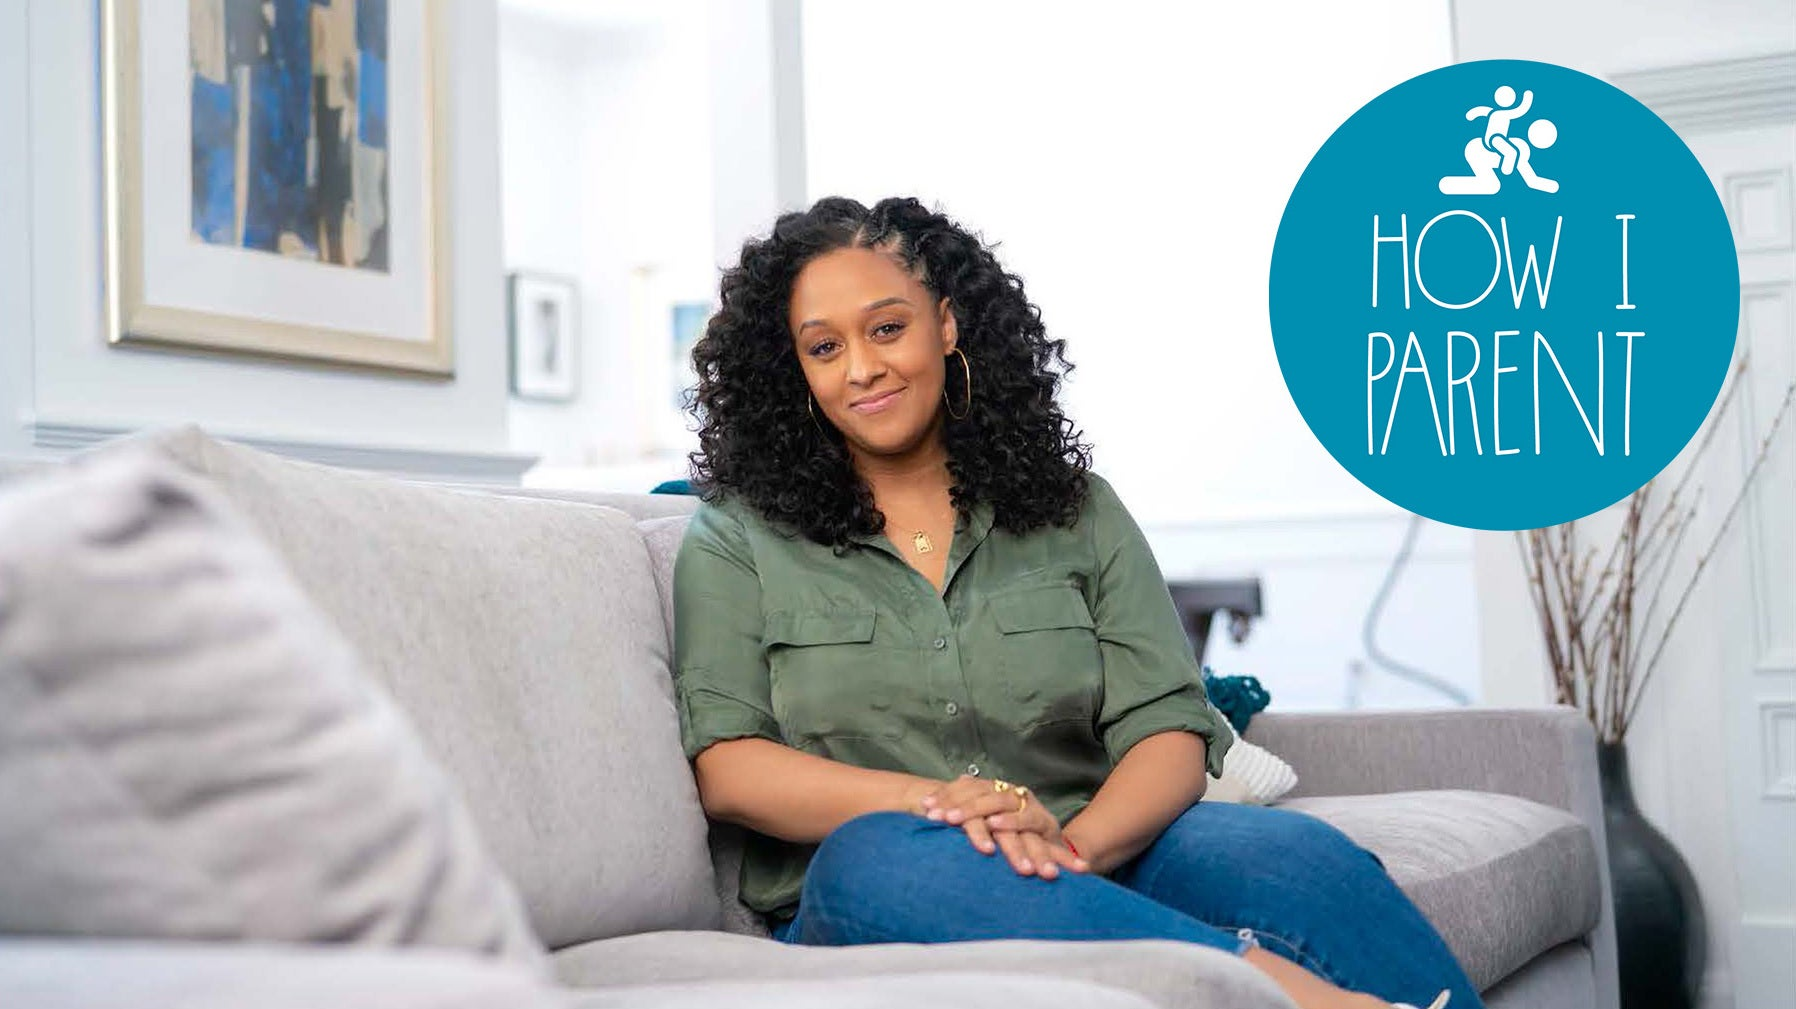 I'm Actress Tia Mowry, And This Is How I Parent